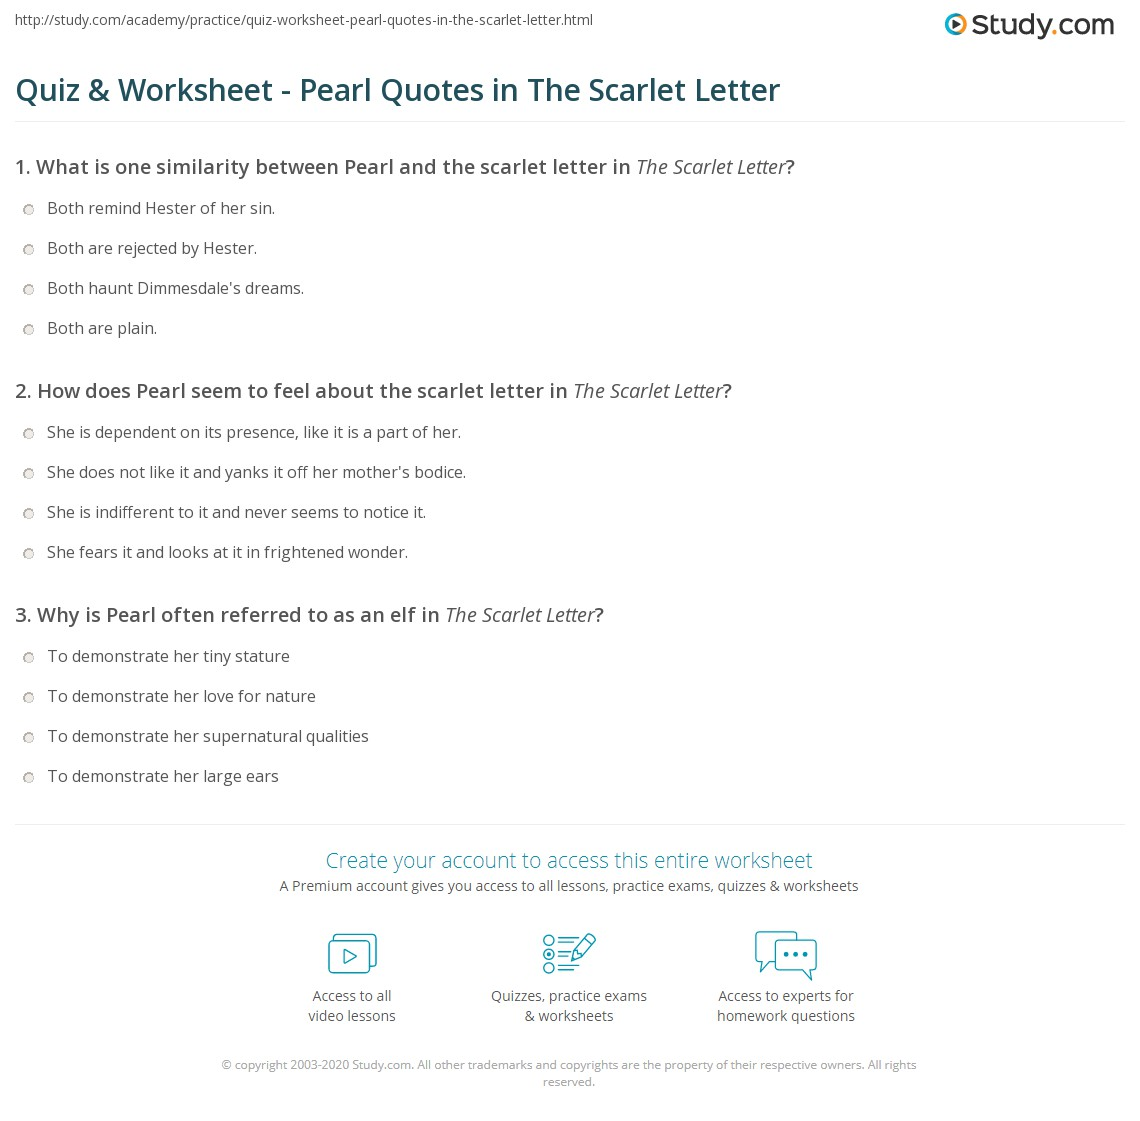 quiz worksheet pearl quotes in the scarlet letter com print pearl quotes in the scarlet letter examples analysis worksheet